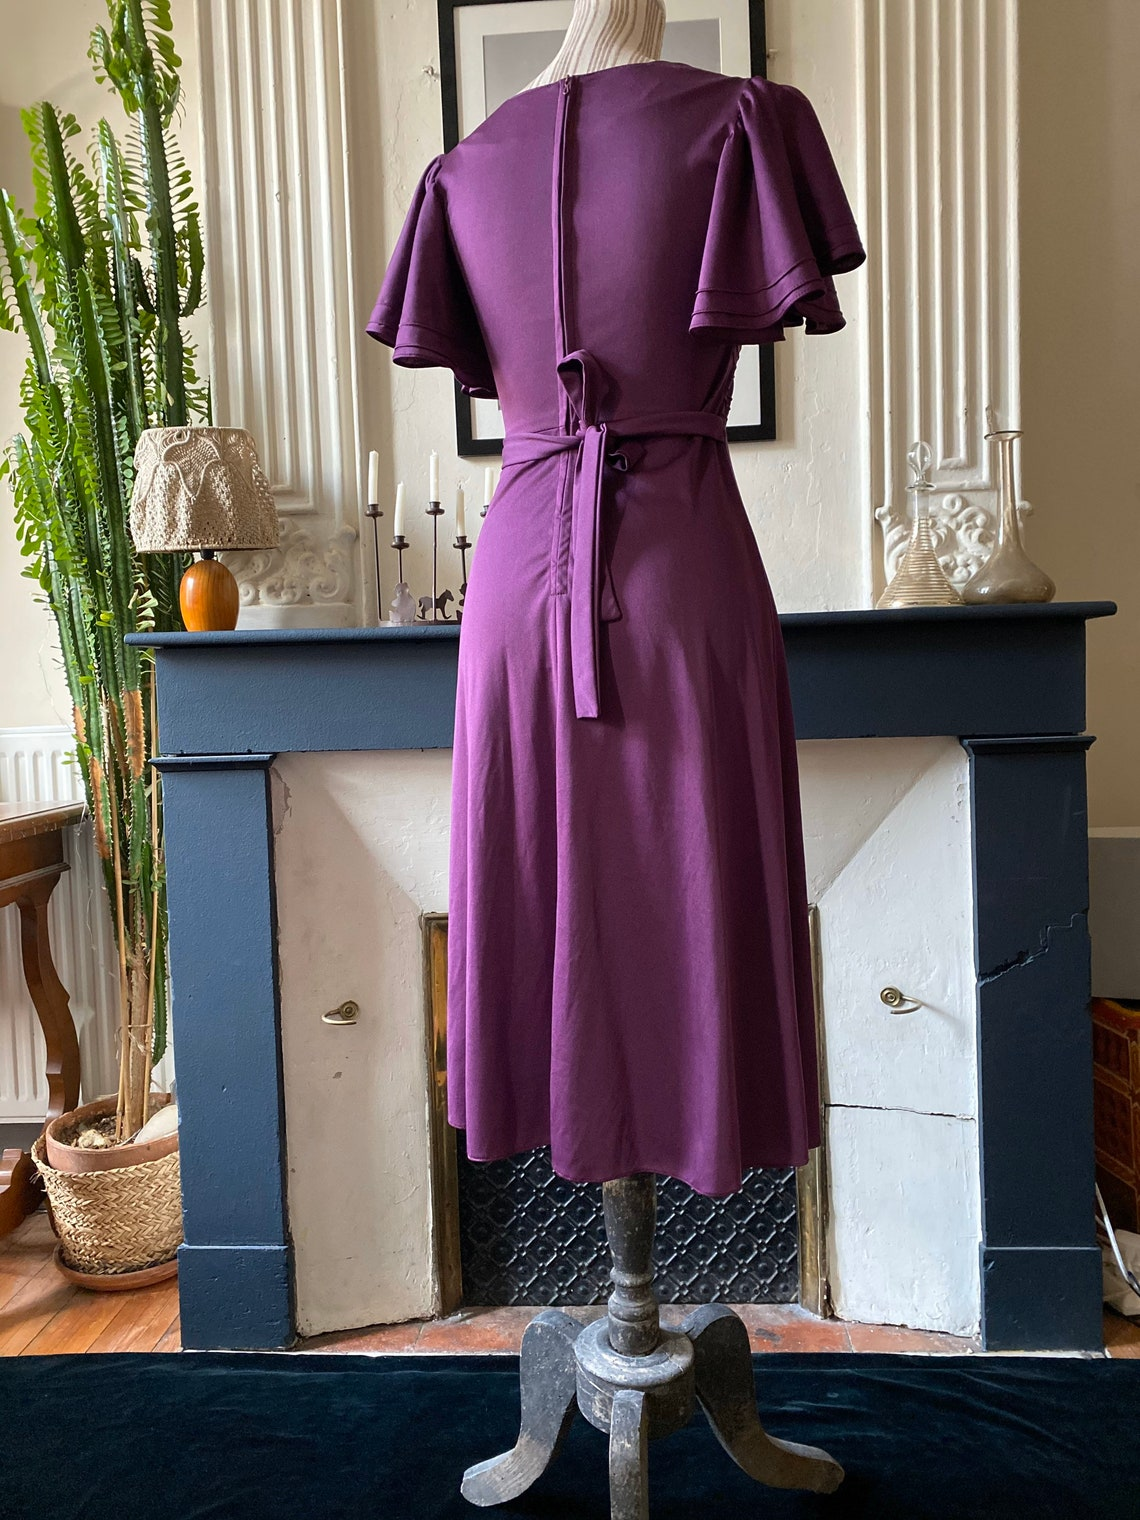 1940s-inspired vintage 70s dress with short ruffled sleeves